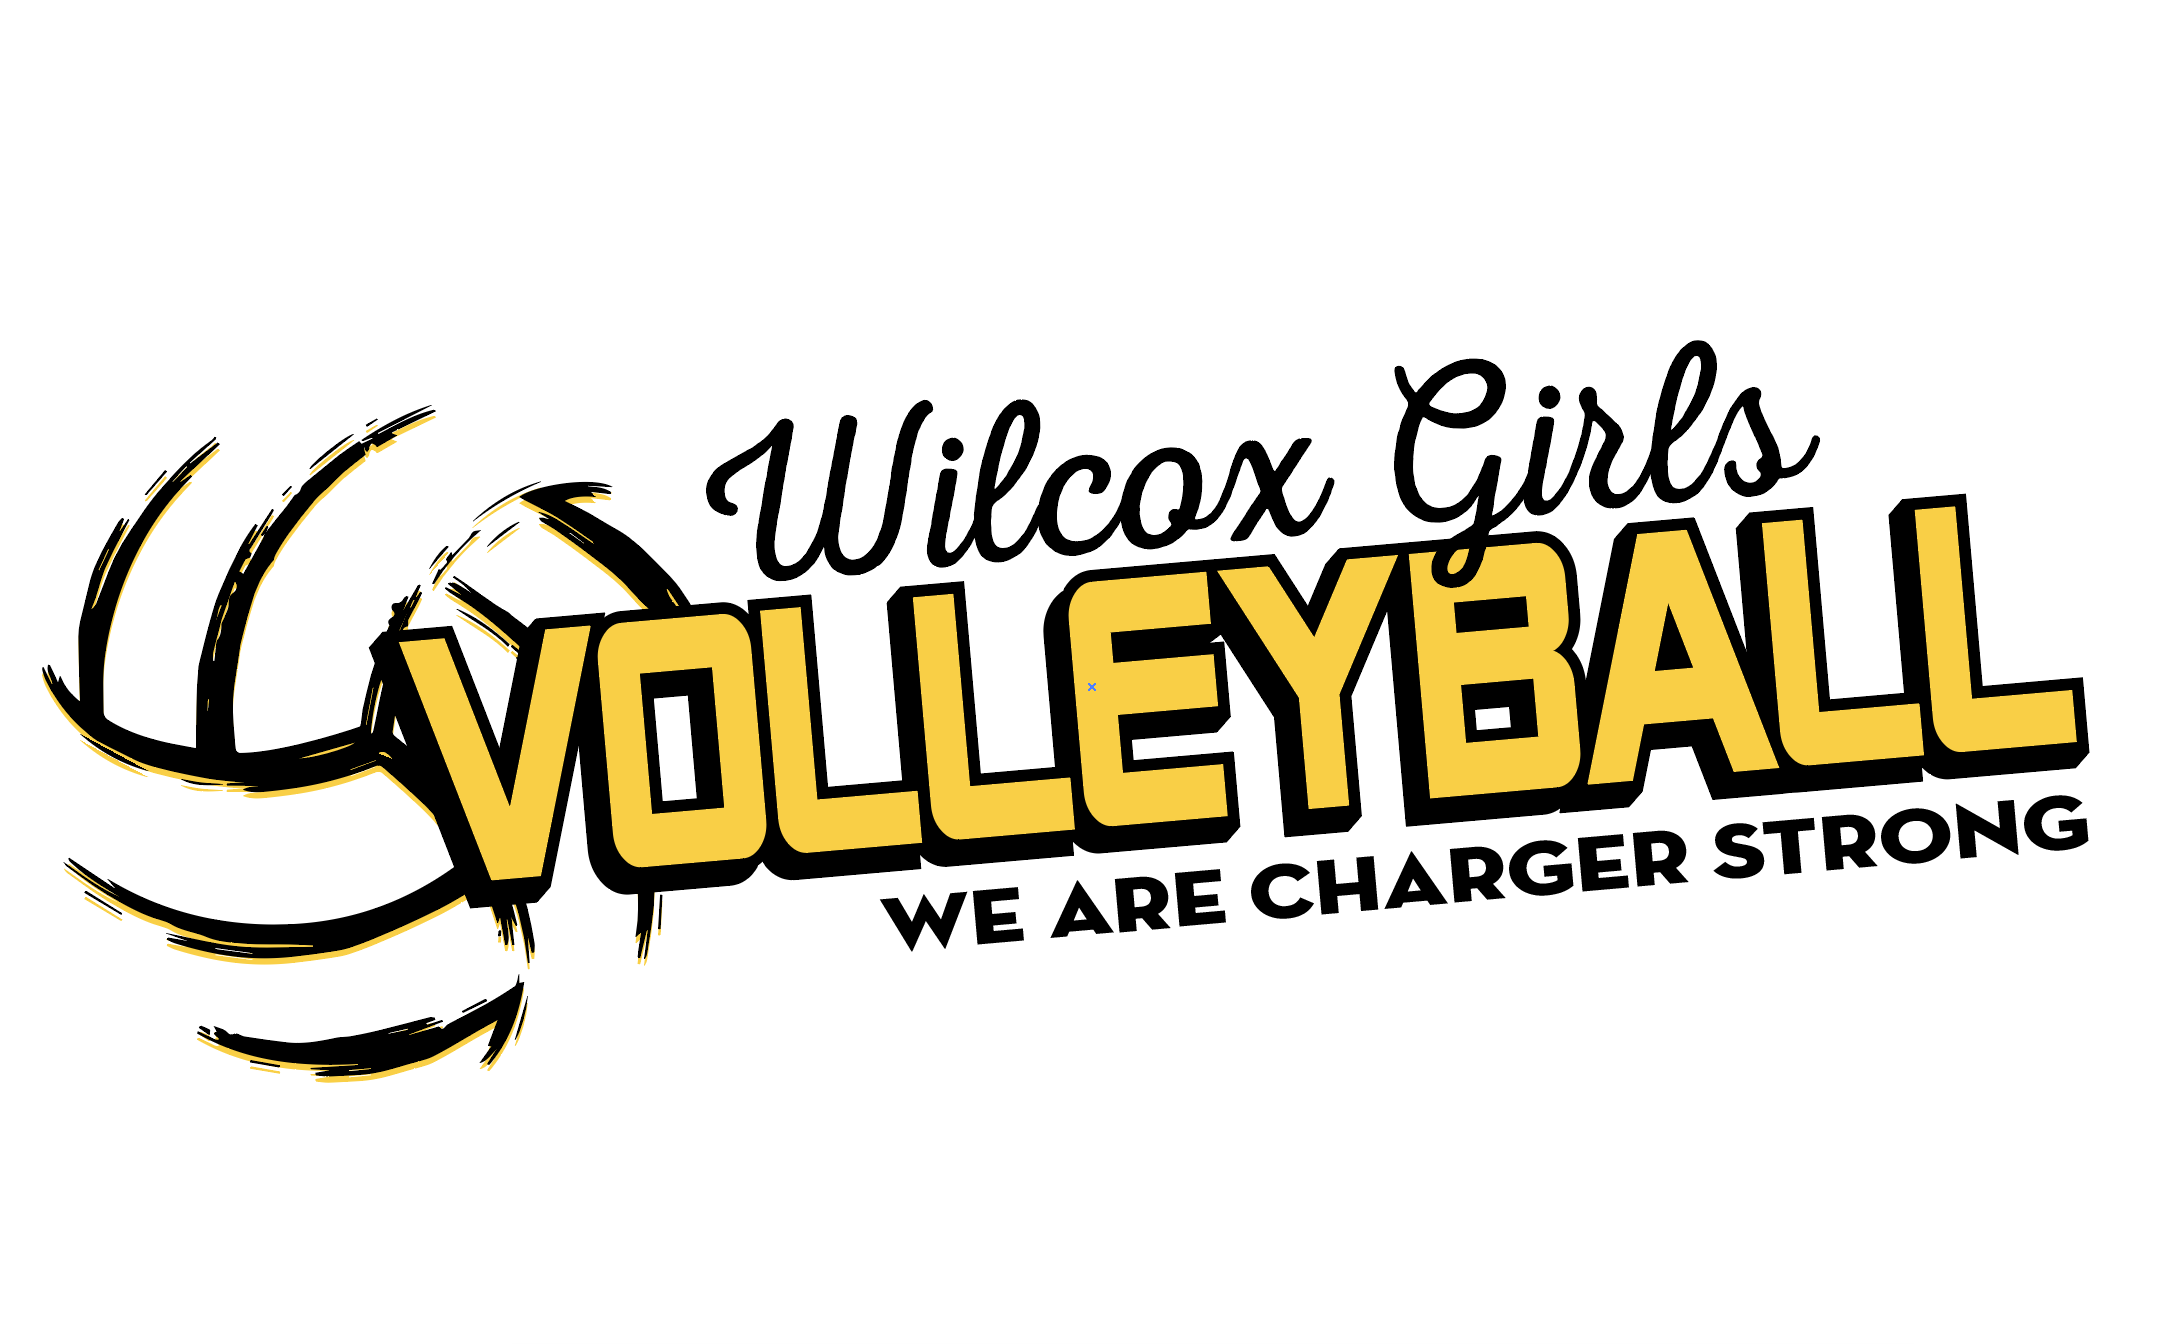 We Are Charger Strong - Wilcox Girls Volleyball